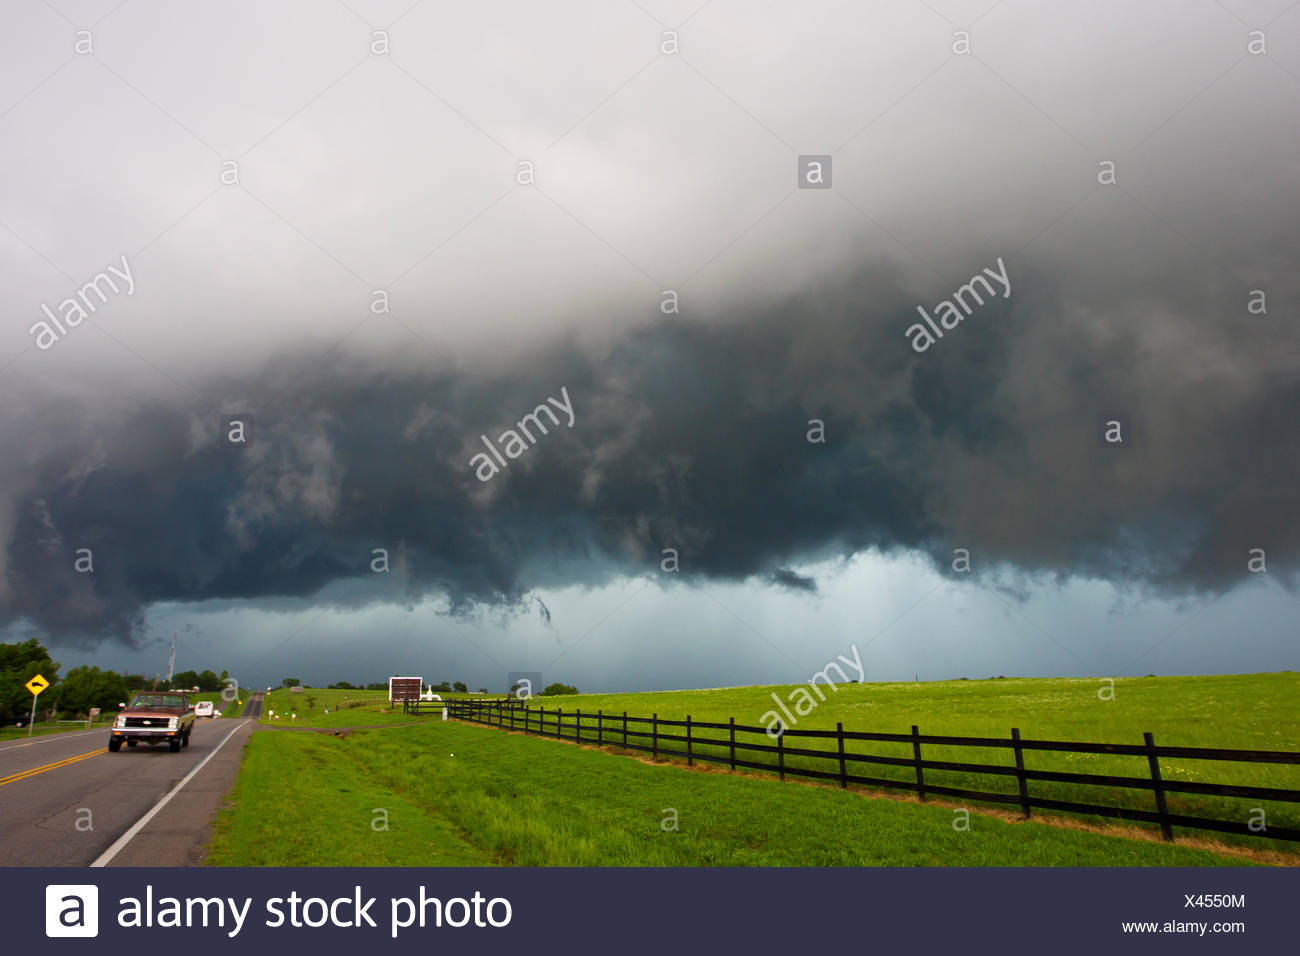 Dark skies and dangerous driving conditions from a supercell thunderstorm. - Stock Image